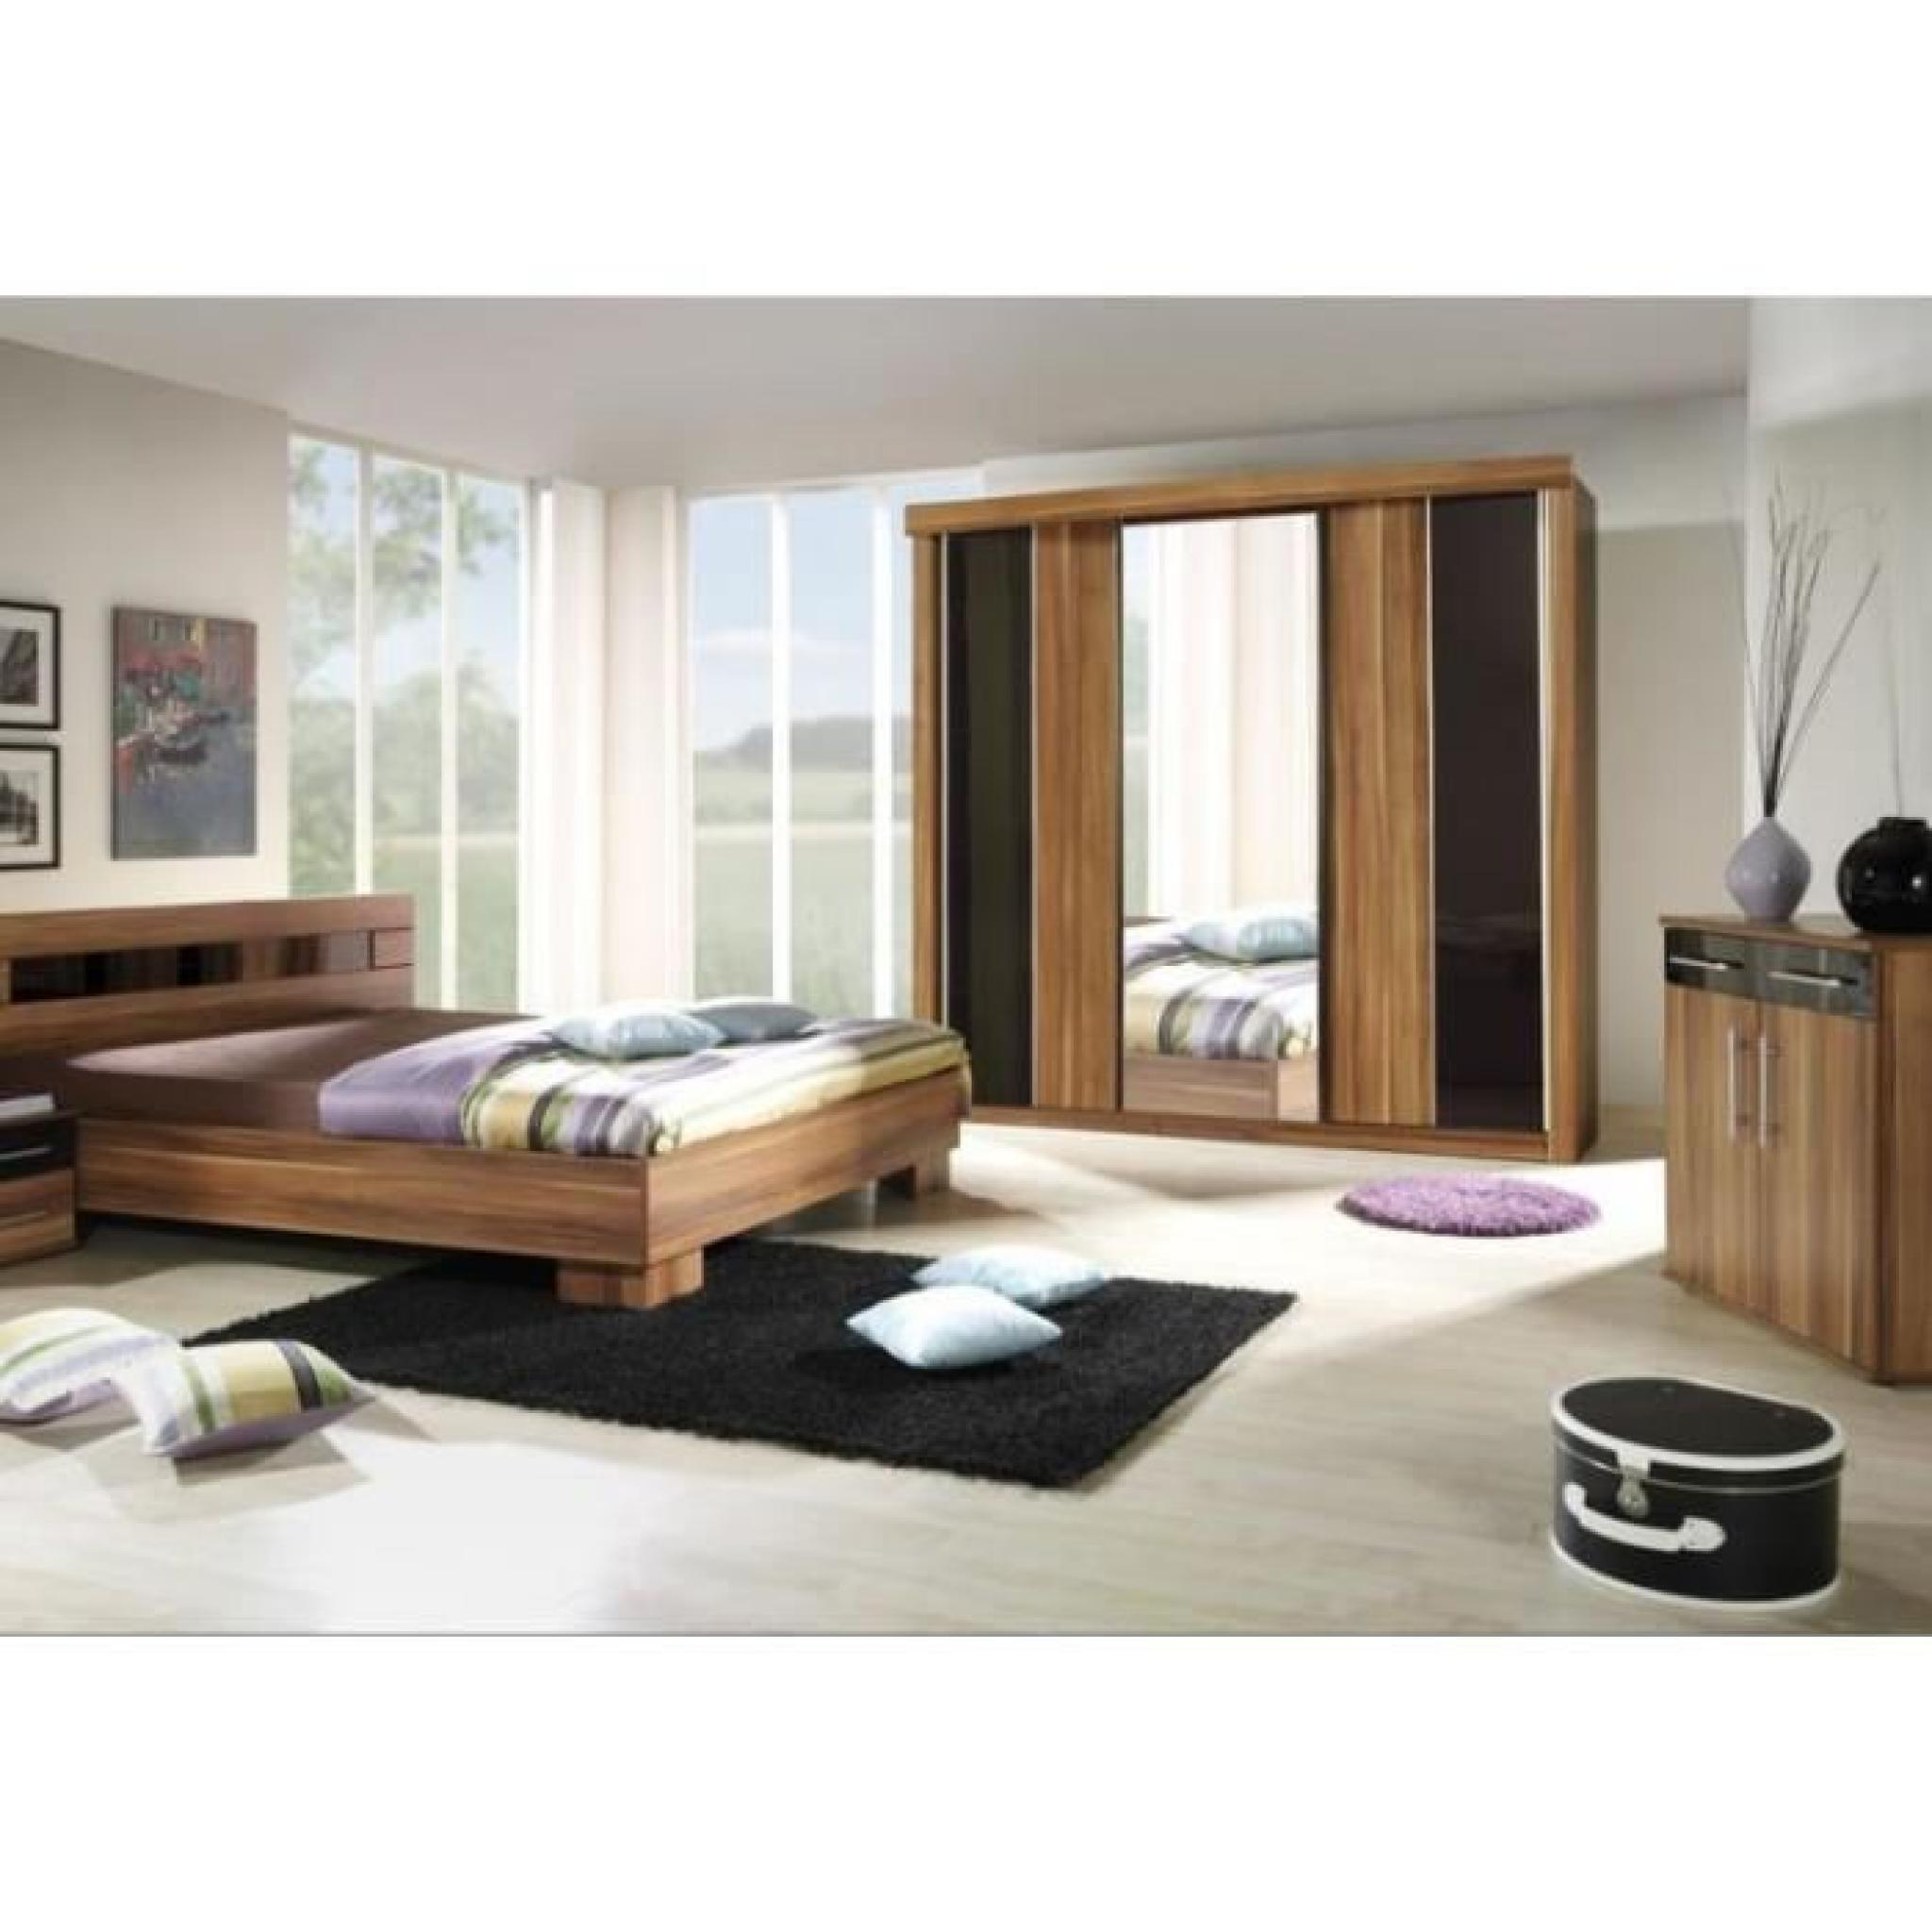 chambre coucher compl te dublin adulte design noyer lit 180x200 cm armoire commode 2. Black Bedroom Furniture Sets. Home Design Ideas